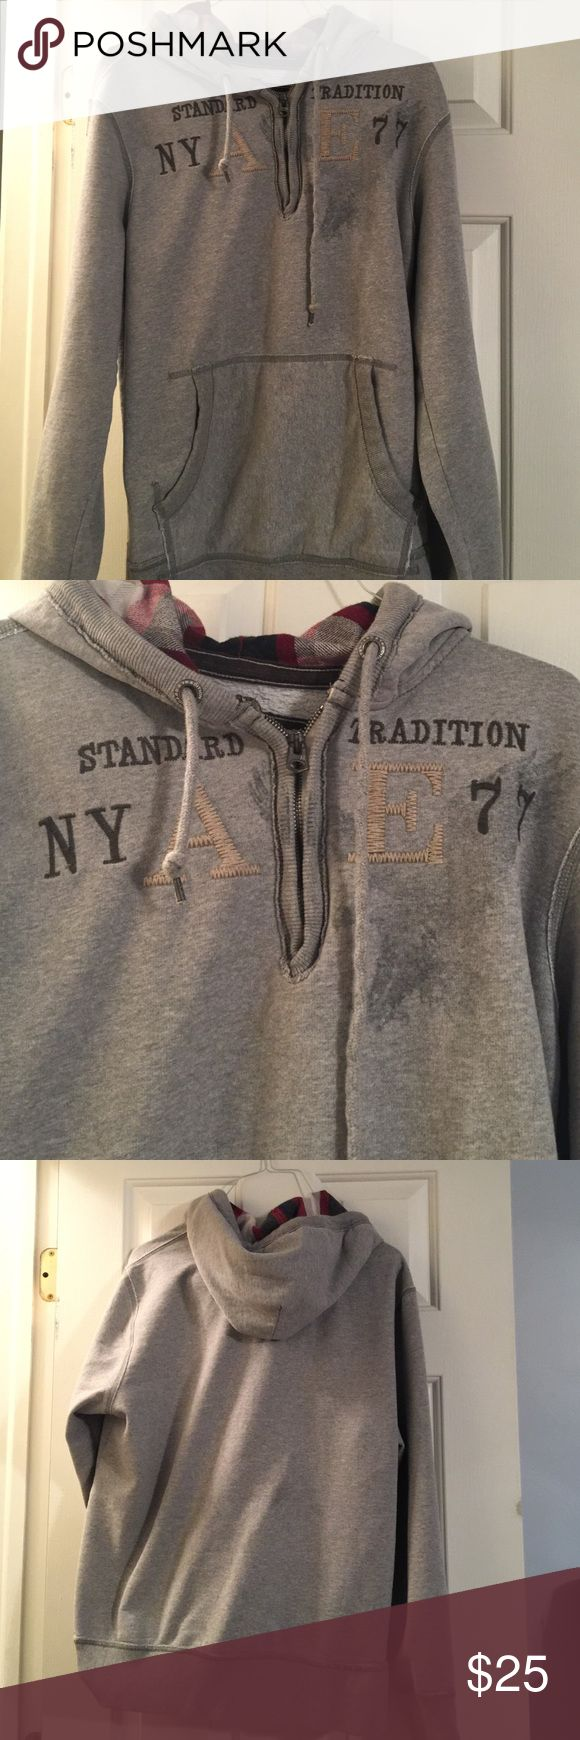 American Eagle Size Large Hoodie Grey Pull Over American Eagle Hoodie. SIZE Large. Front pocket, and partial zip in front. Flannel material inside of hood. Only Worn a couple times. American Eagle Outfitters Tops Sweatshirts & Hoodies